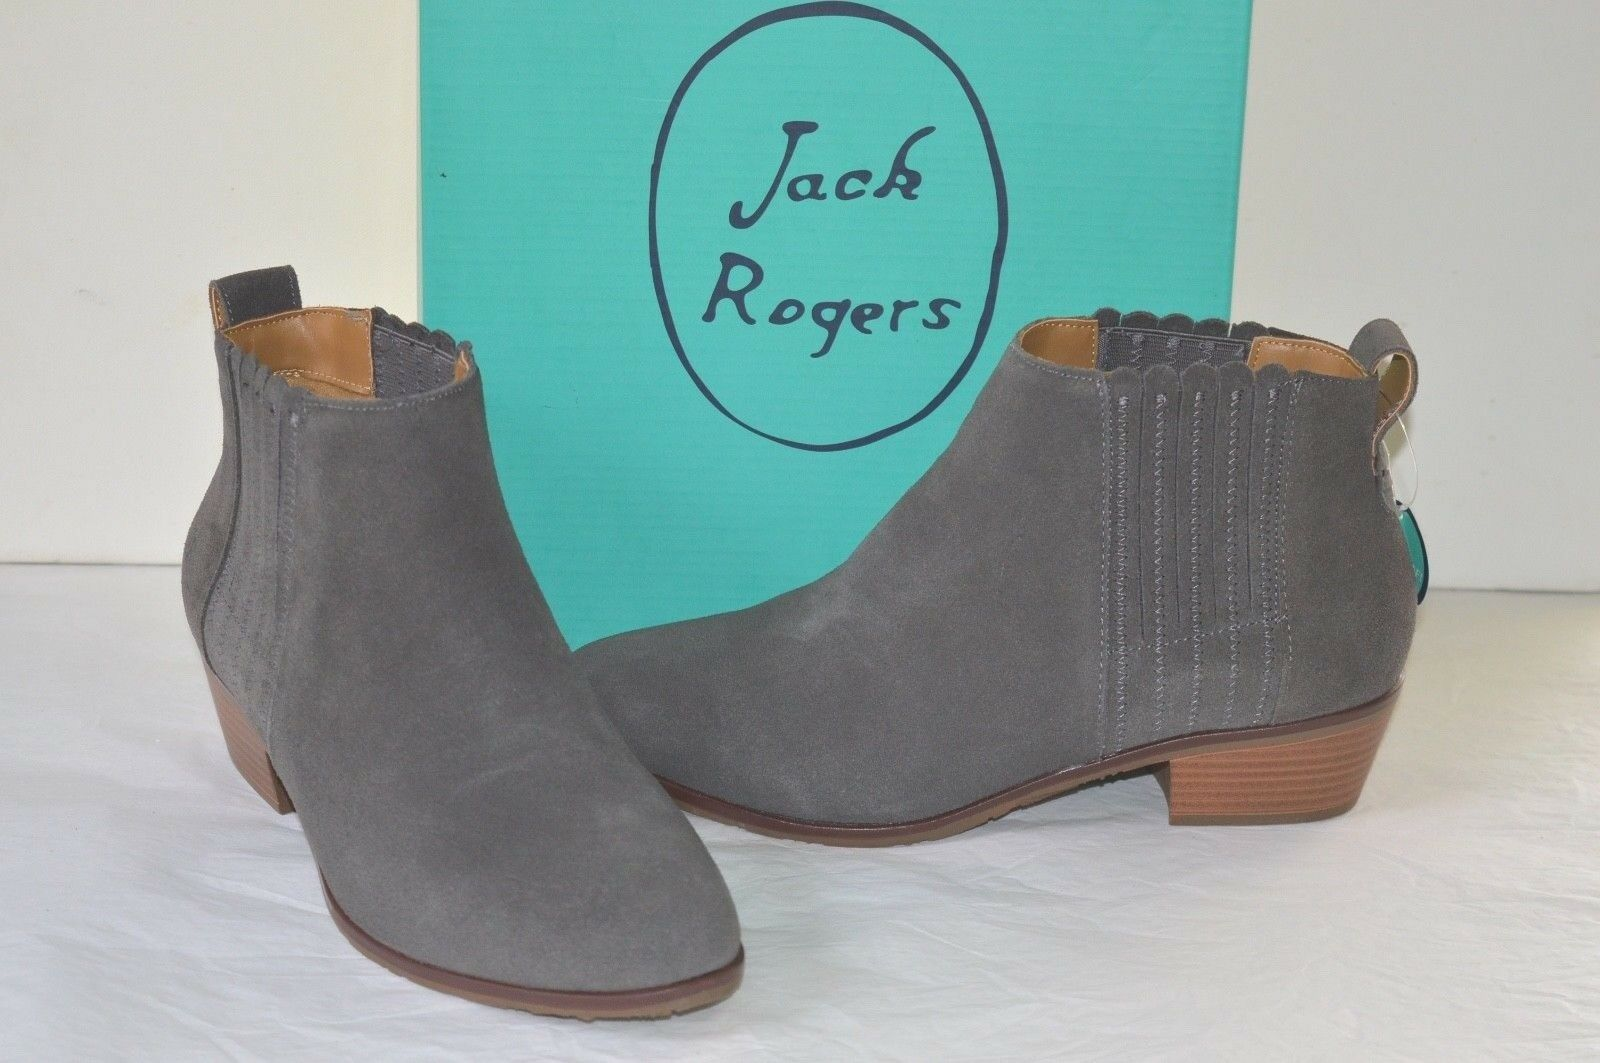 New 148 Jack Rogers Liddy Suede Charcoal Waterproof Short/Ankle Boots/Booties